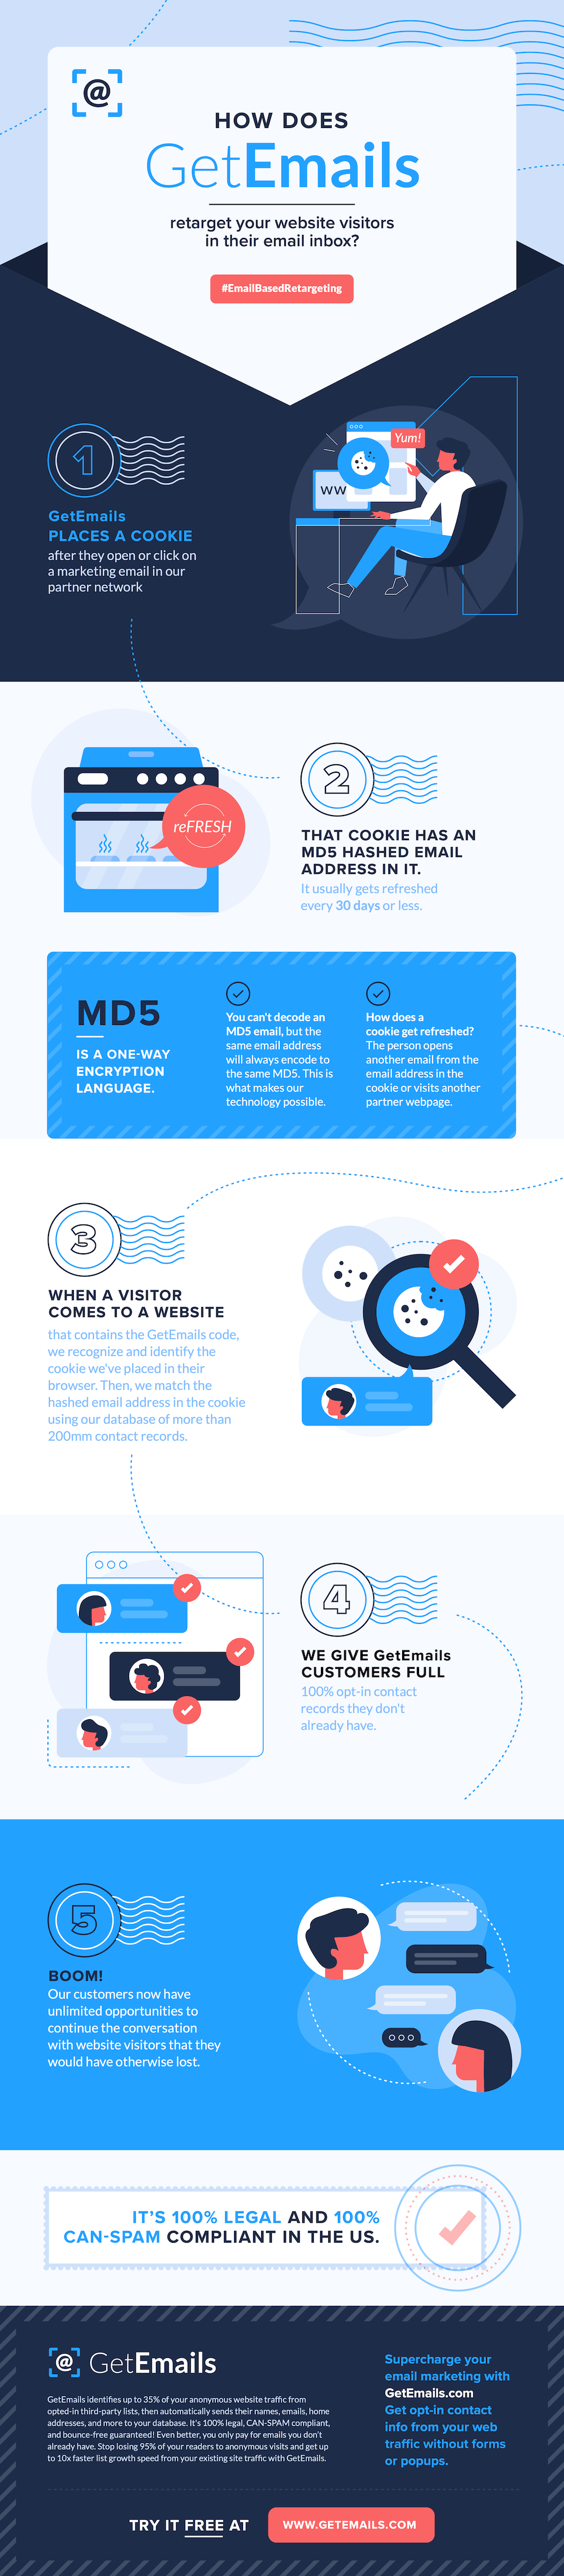 GetEmails - How it Works!